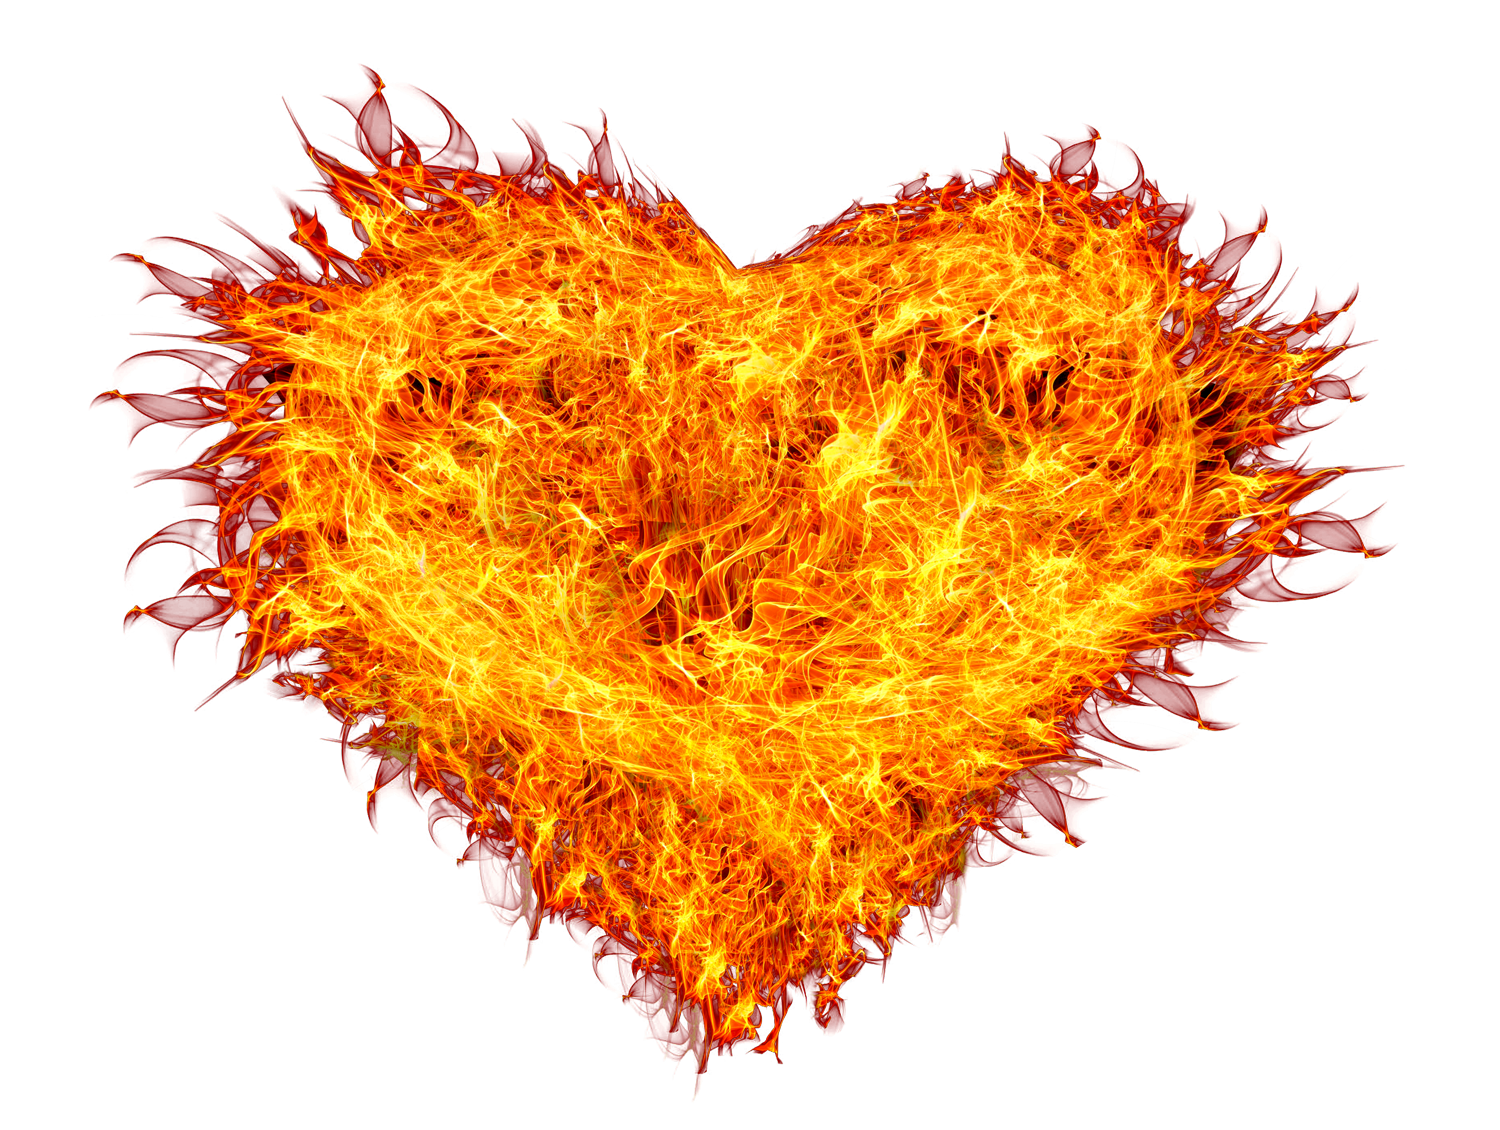 Burnings Heart on Fire PNG Image